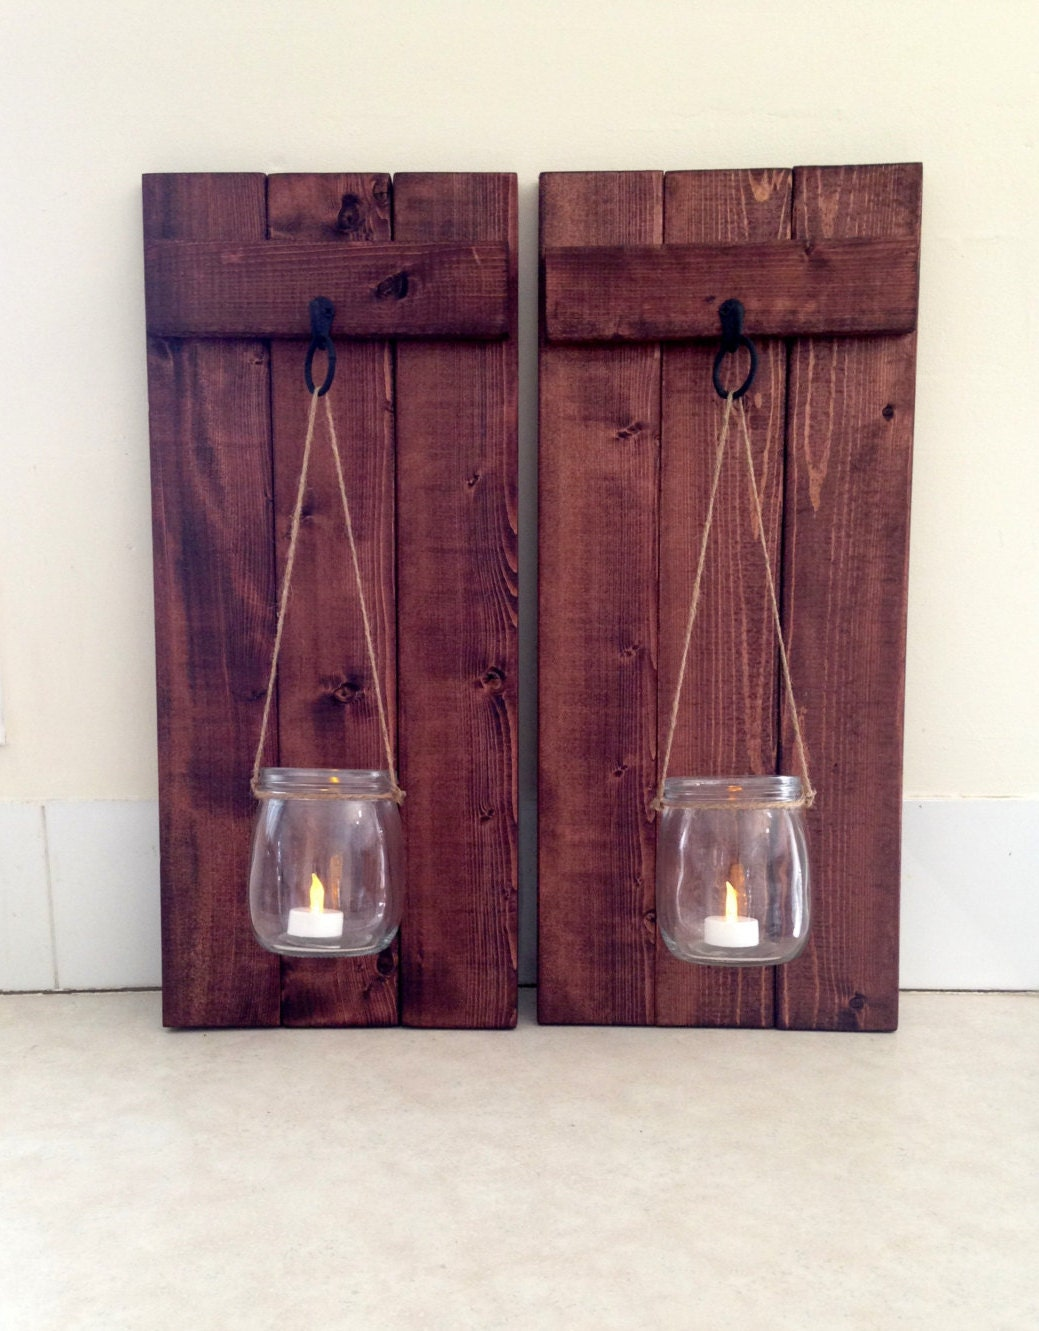 Rustic wall decor wooden candle holder mason jar candle zoom amipublicfo Image collections